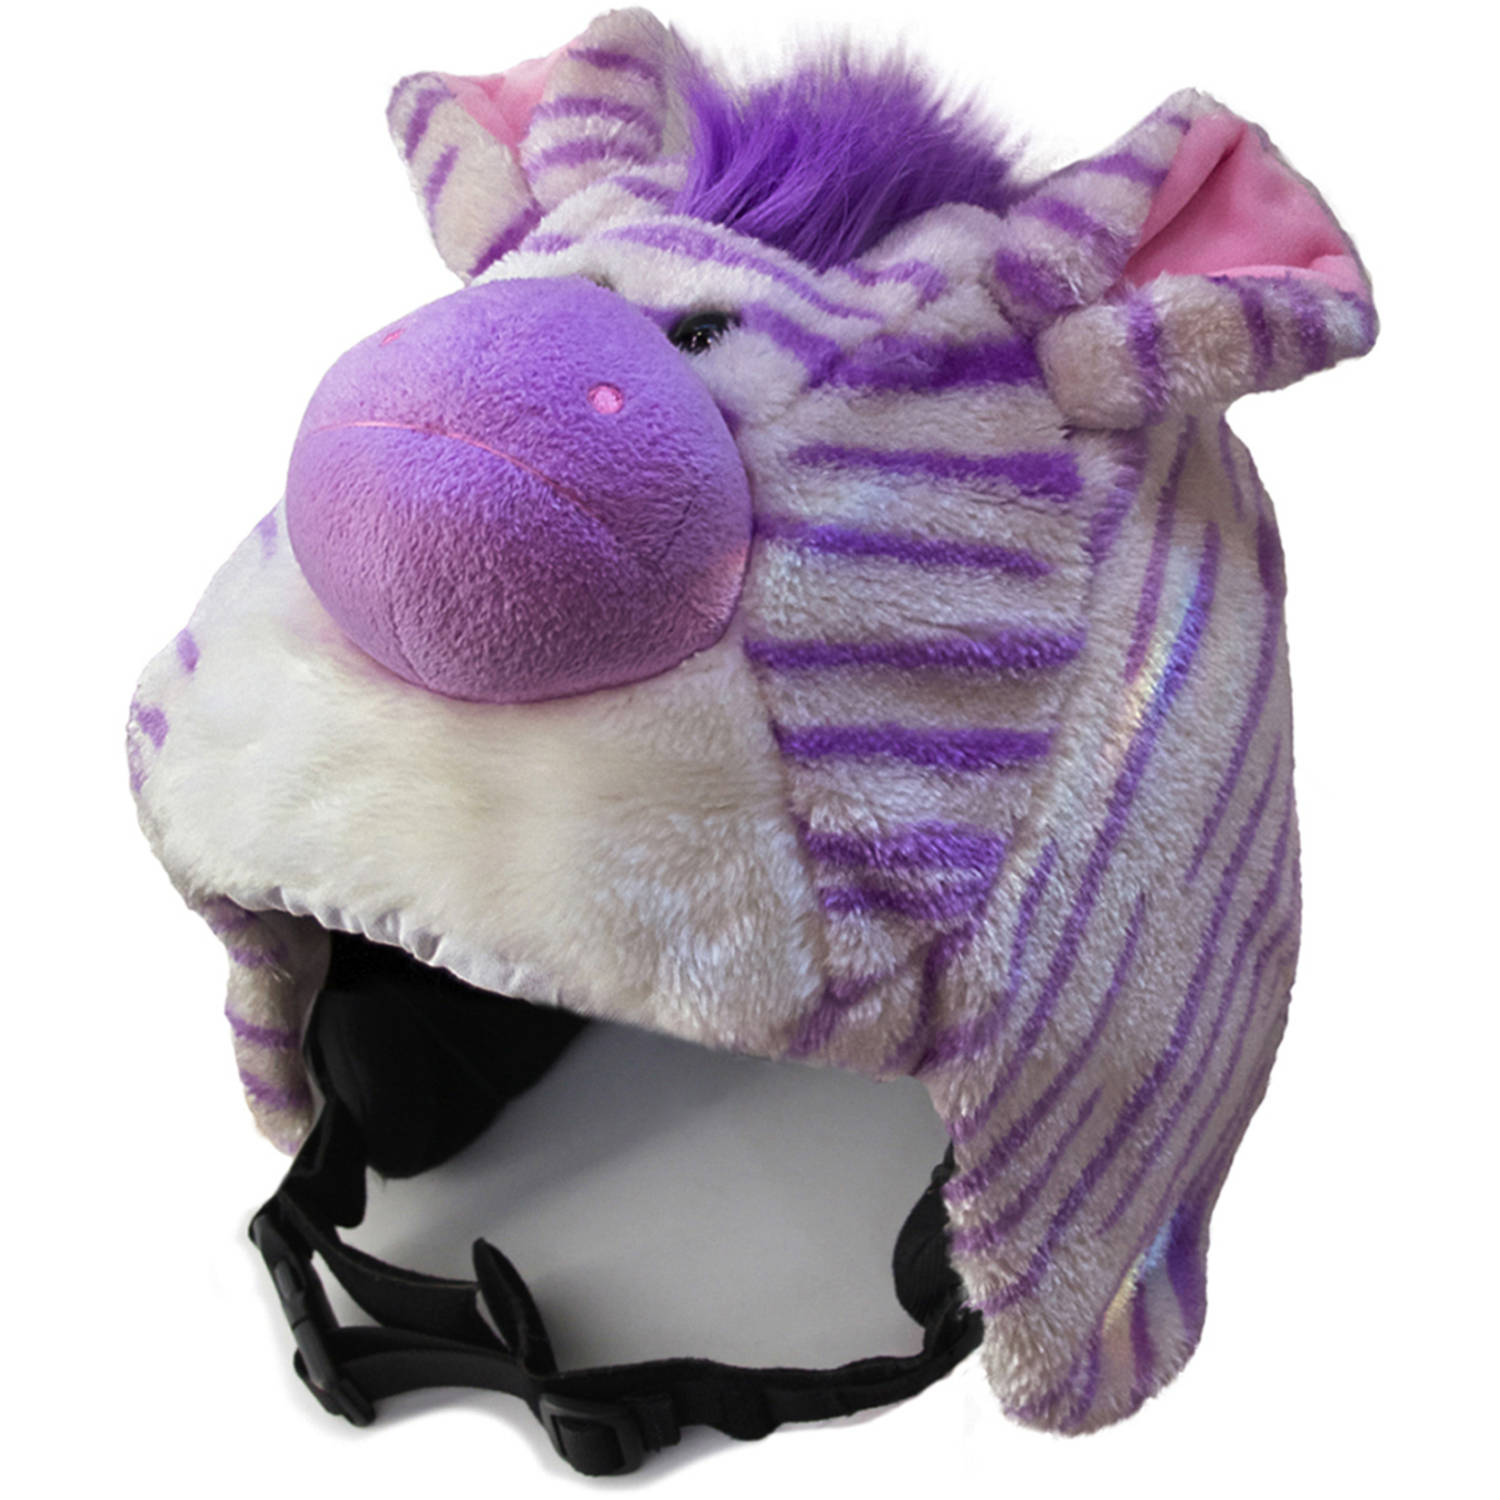 crazeeHeads Zoe the Zebra Plush Helmet Cover by crazeeHeads